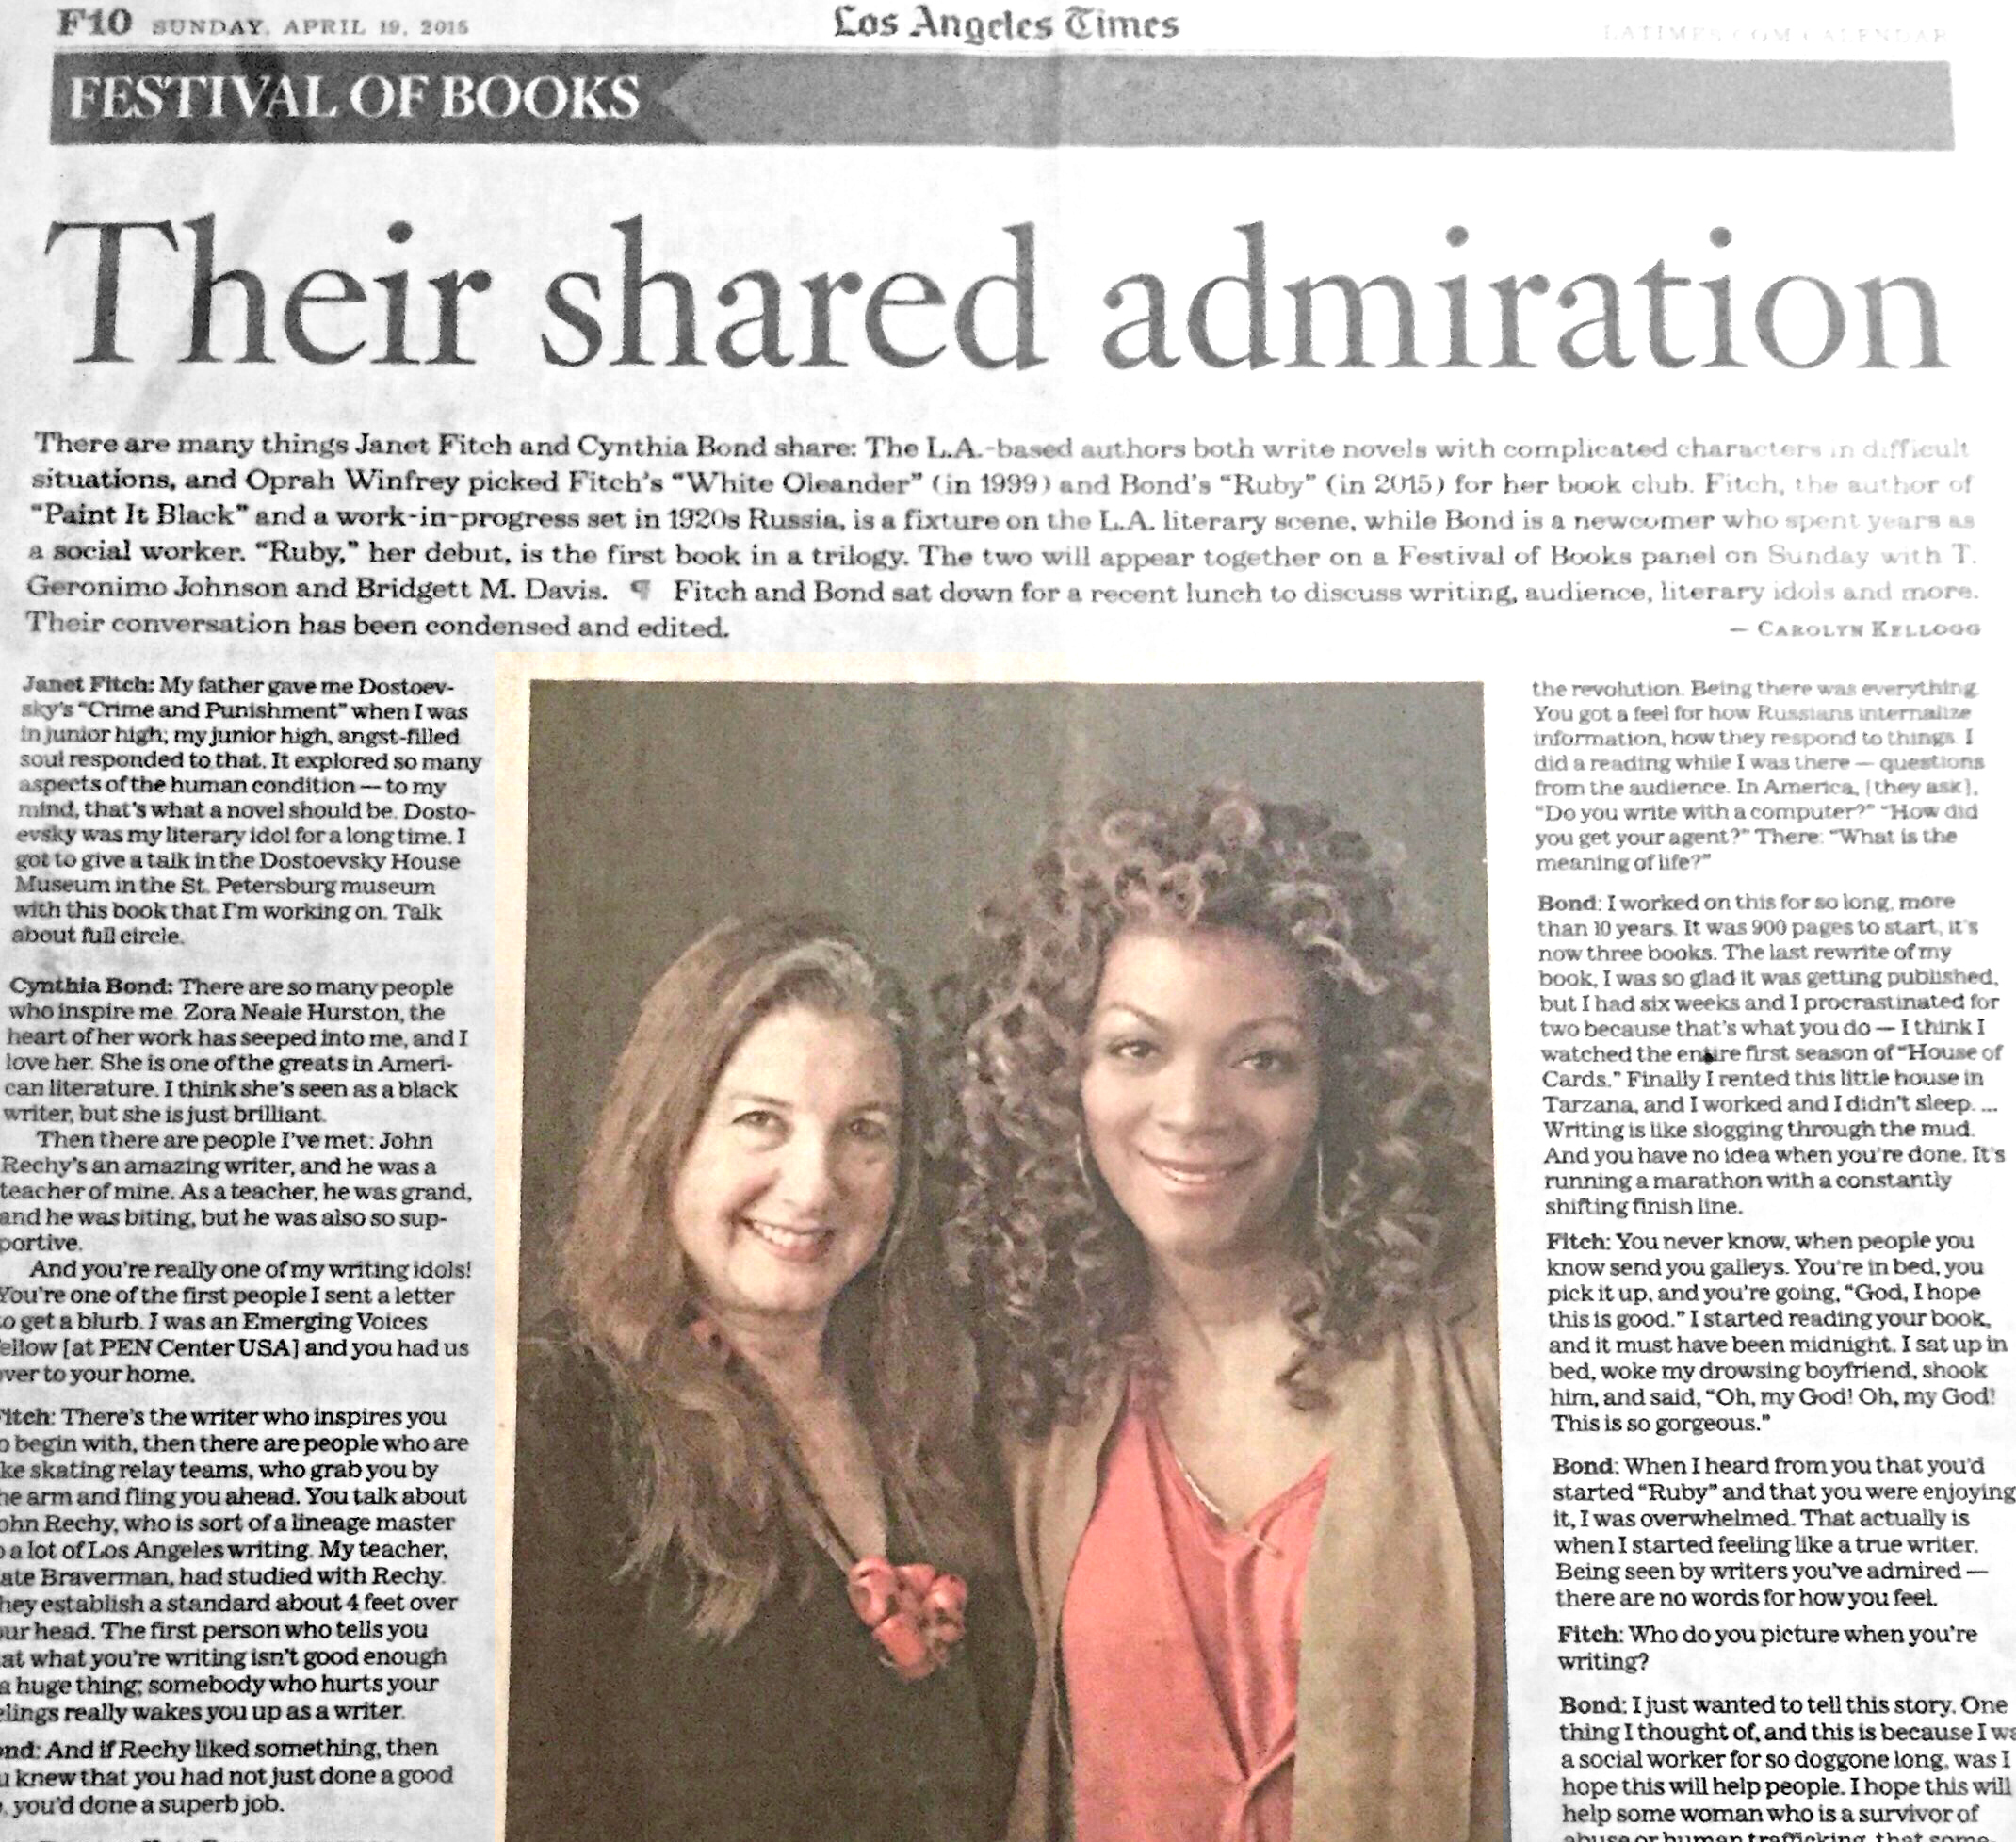 LA Times - Authors Janet Fitch, Cynthia Bond share admiration for each others work